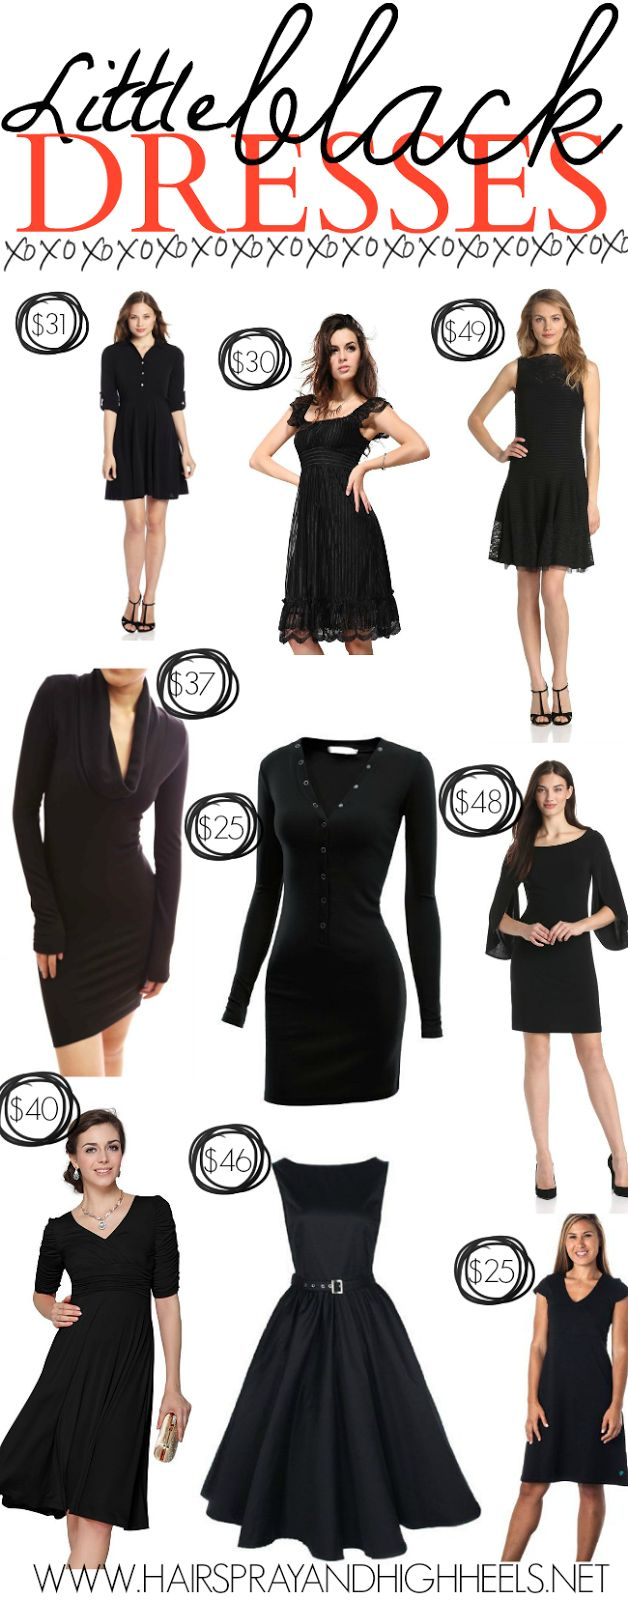 """Hairspray and High Heels: """"A Jersey Girl's Guide to Beauty"""": 10 Little Black Dresses Under $50"""